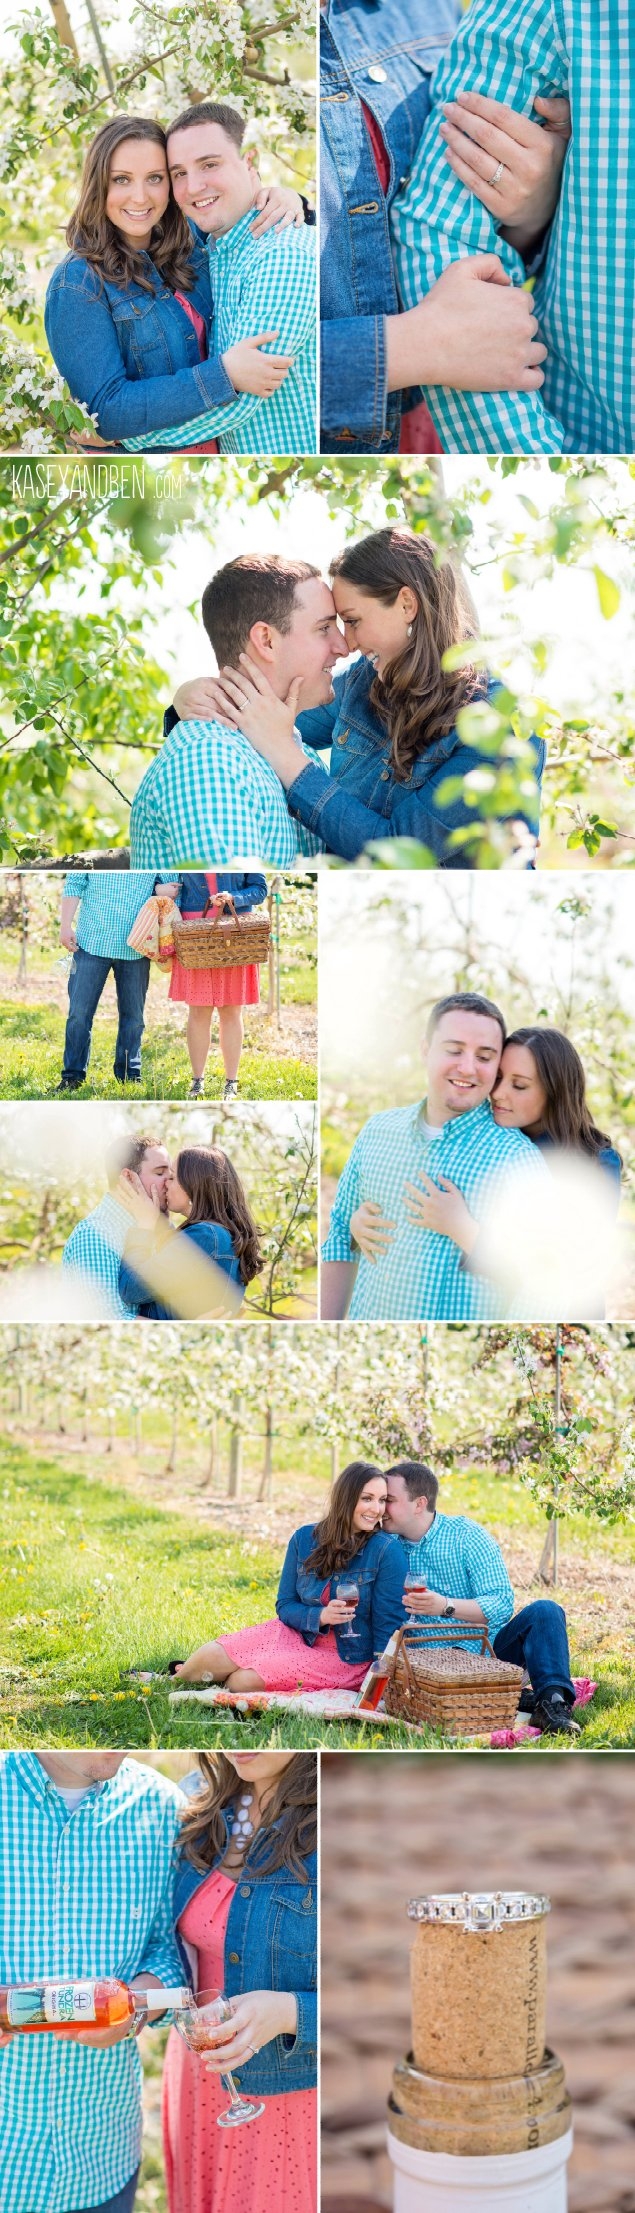 Door_County_Engagement_Wedding_Photographer_Photos_Orchard_Blossom_Picnic_Wine